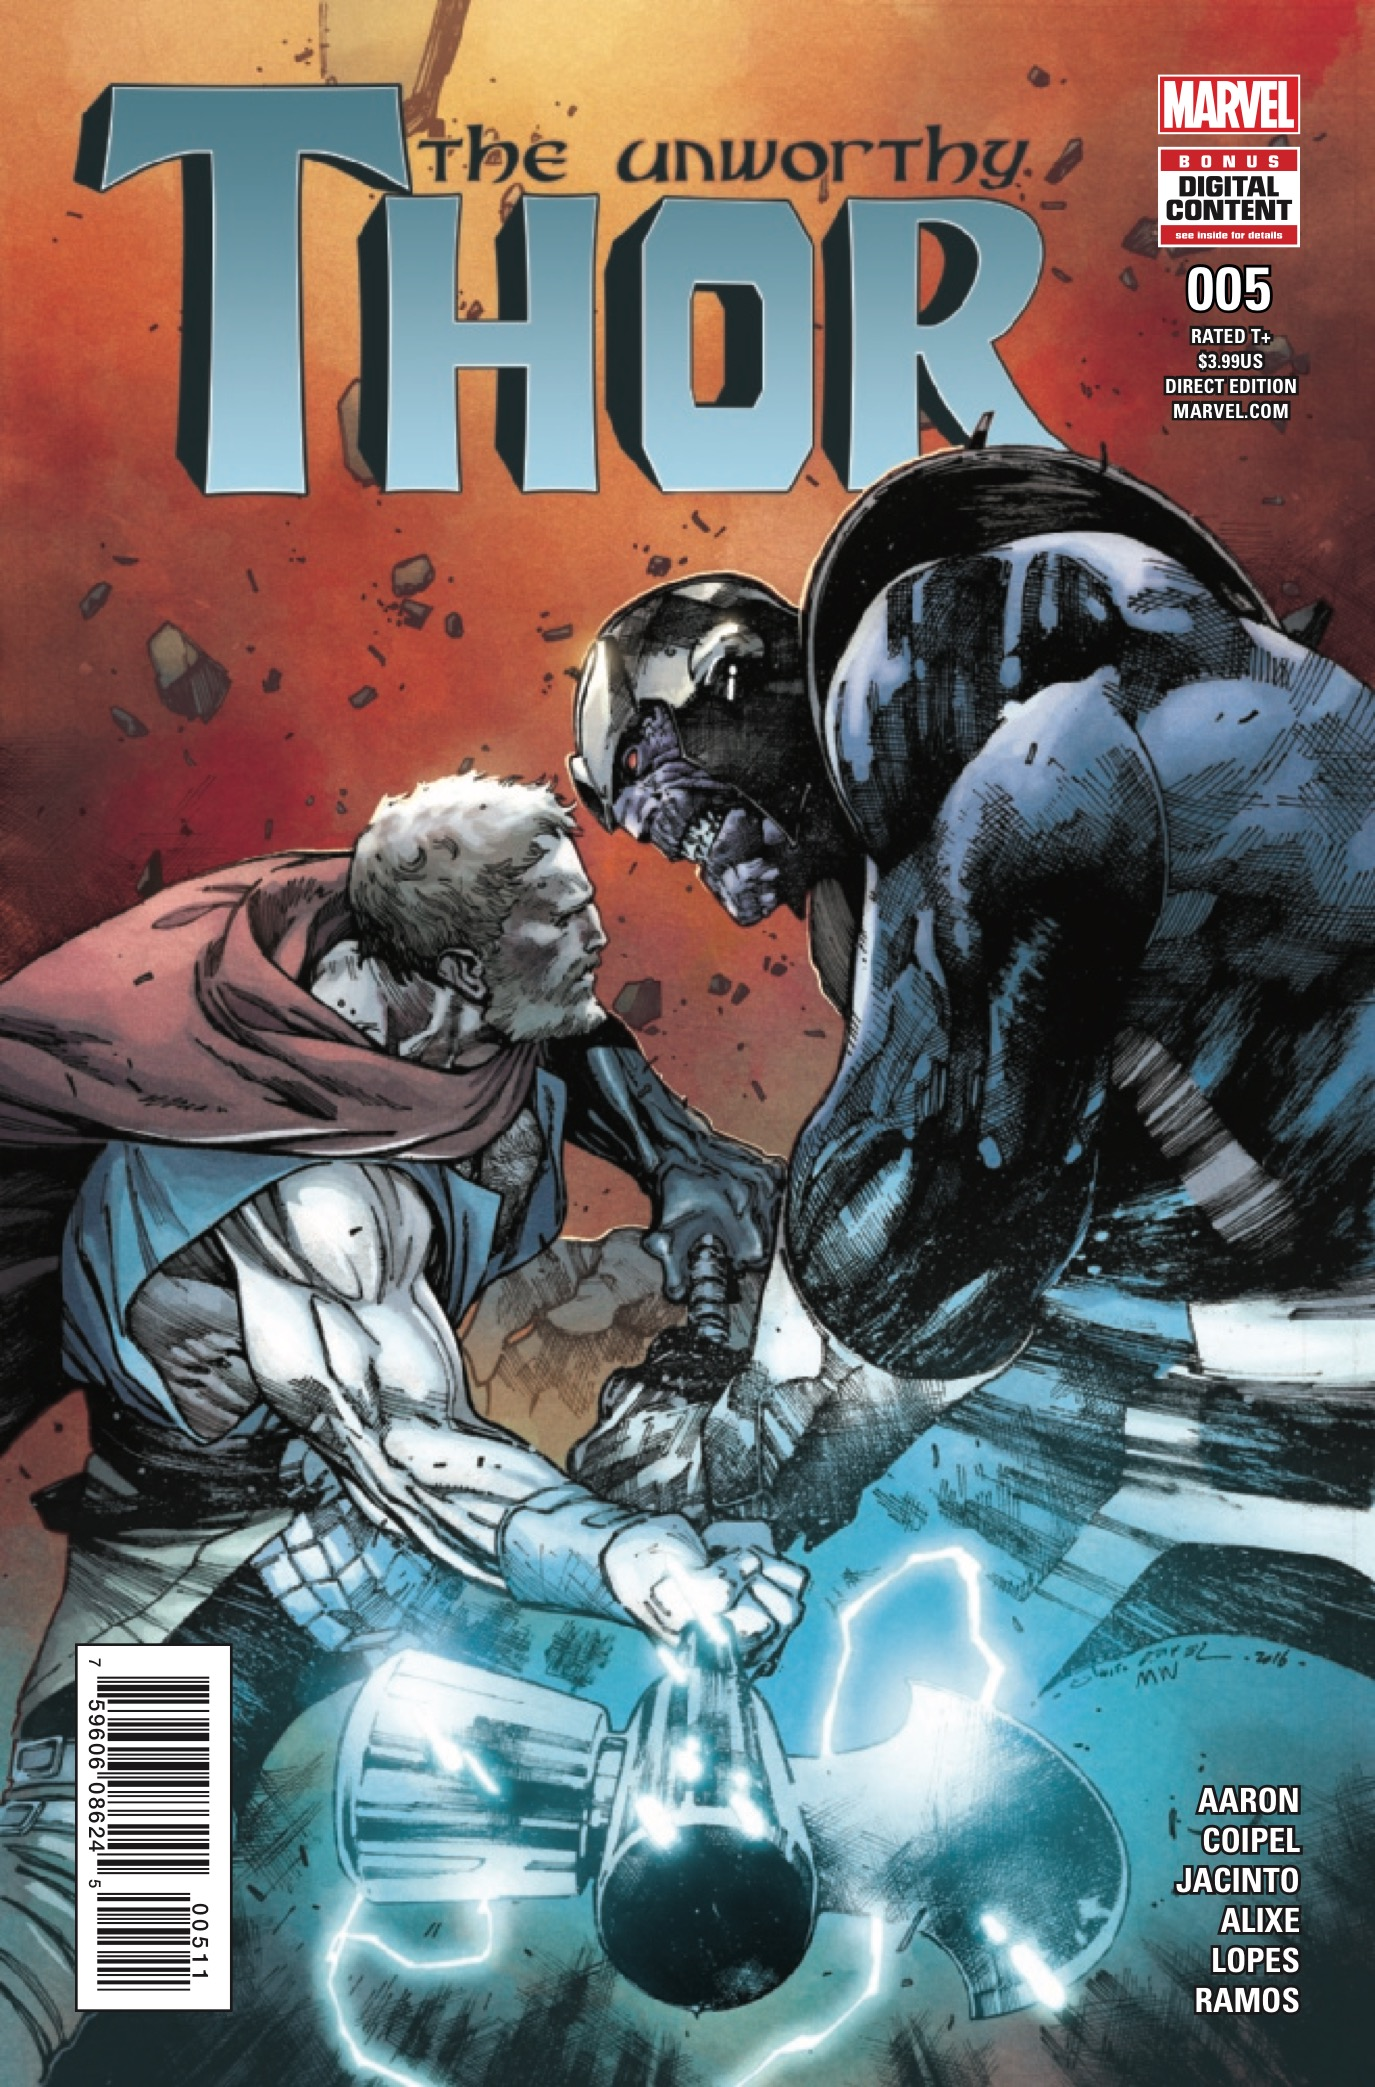 Marvel Preview: The Unworthy Thor #5